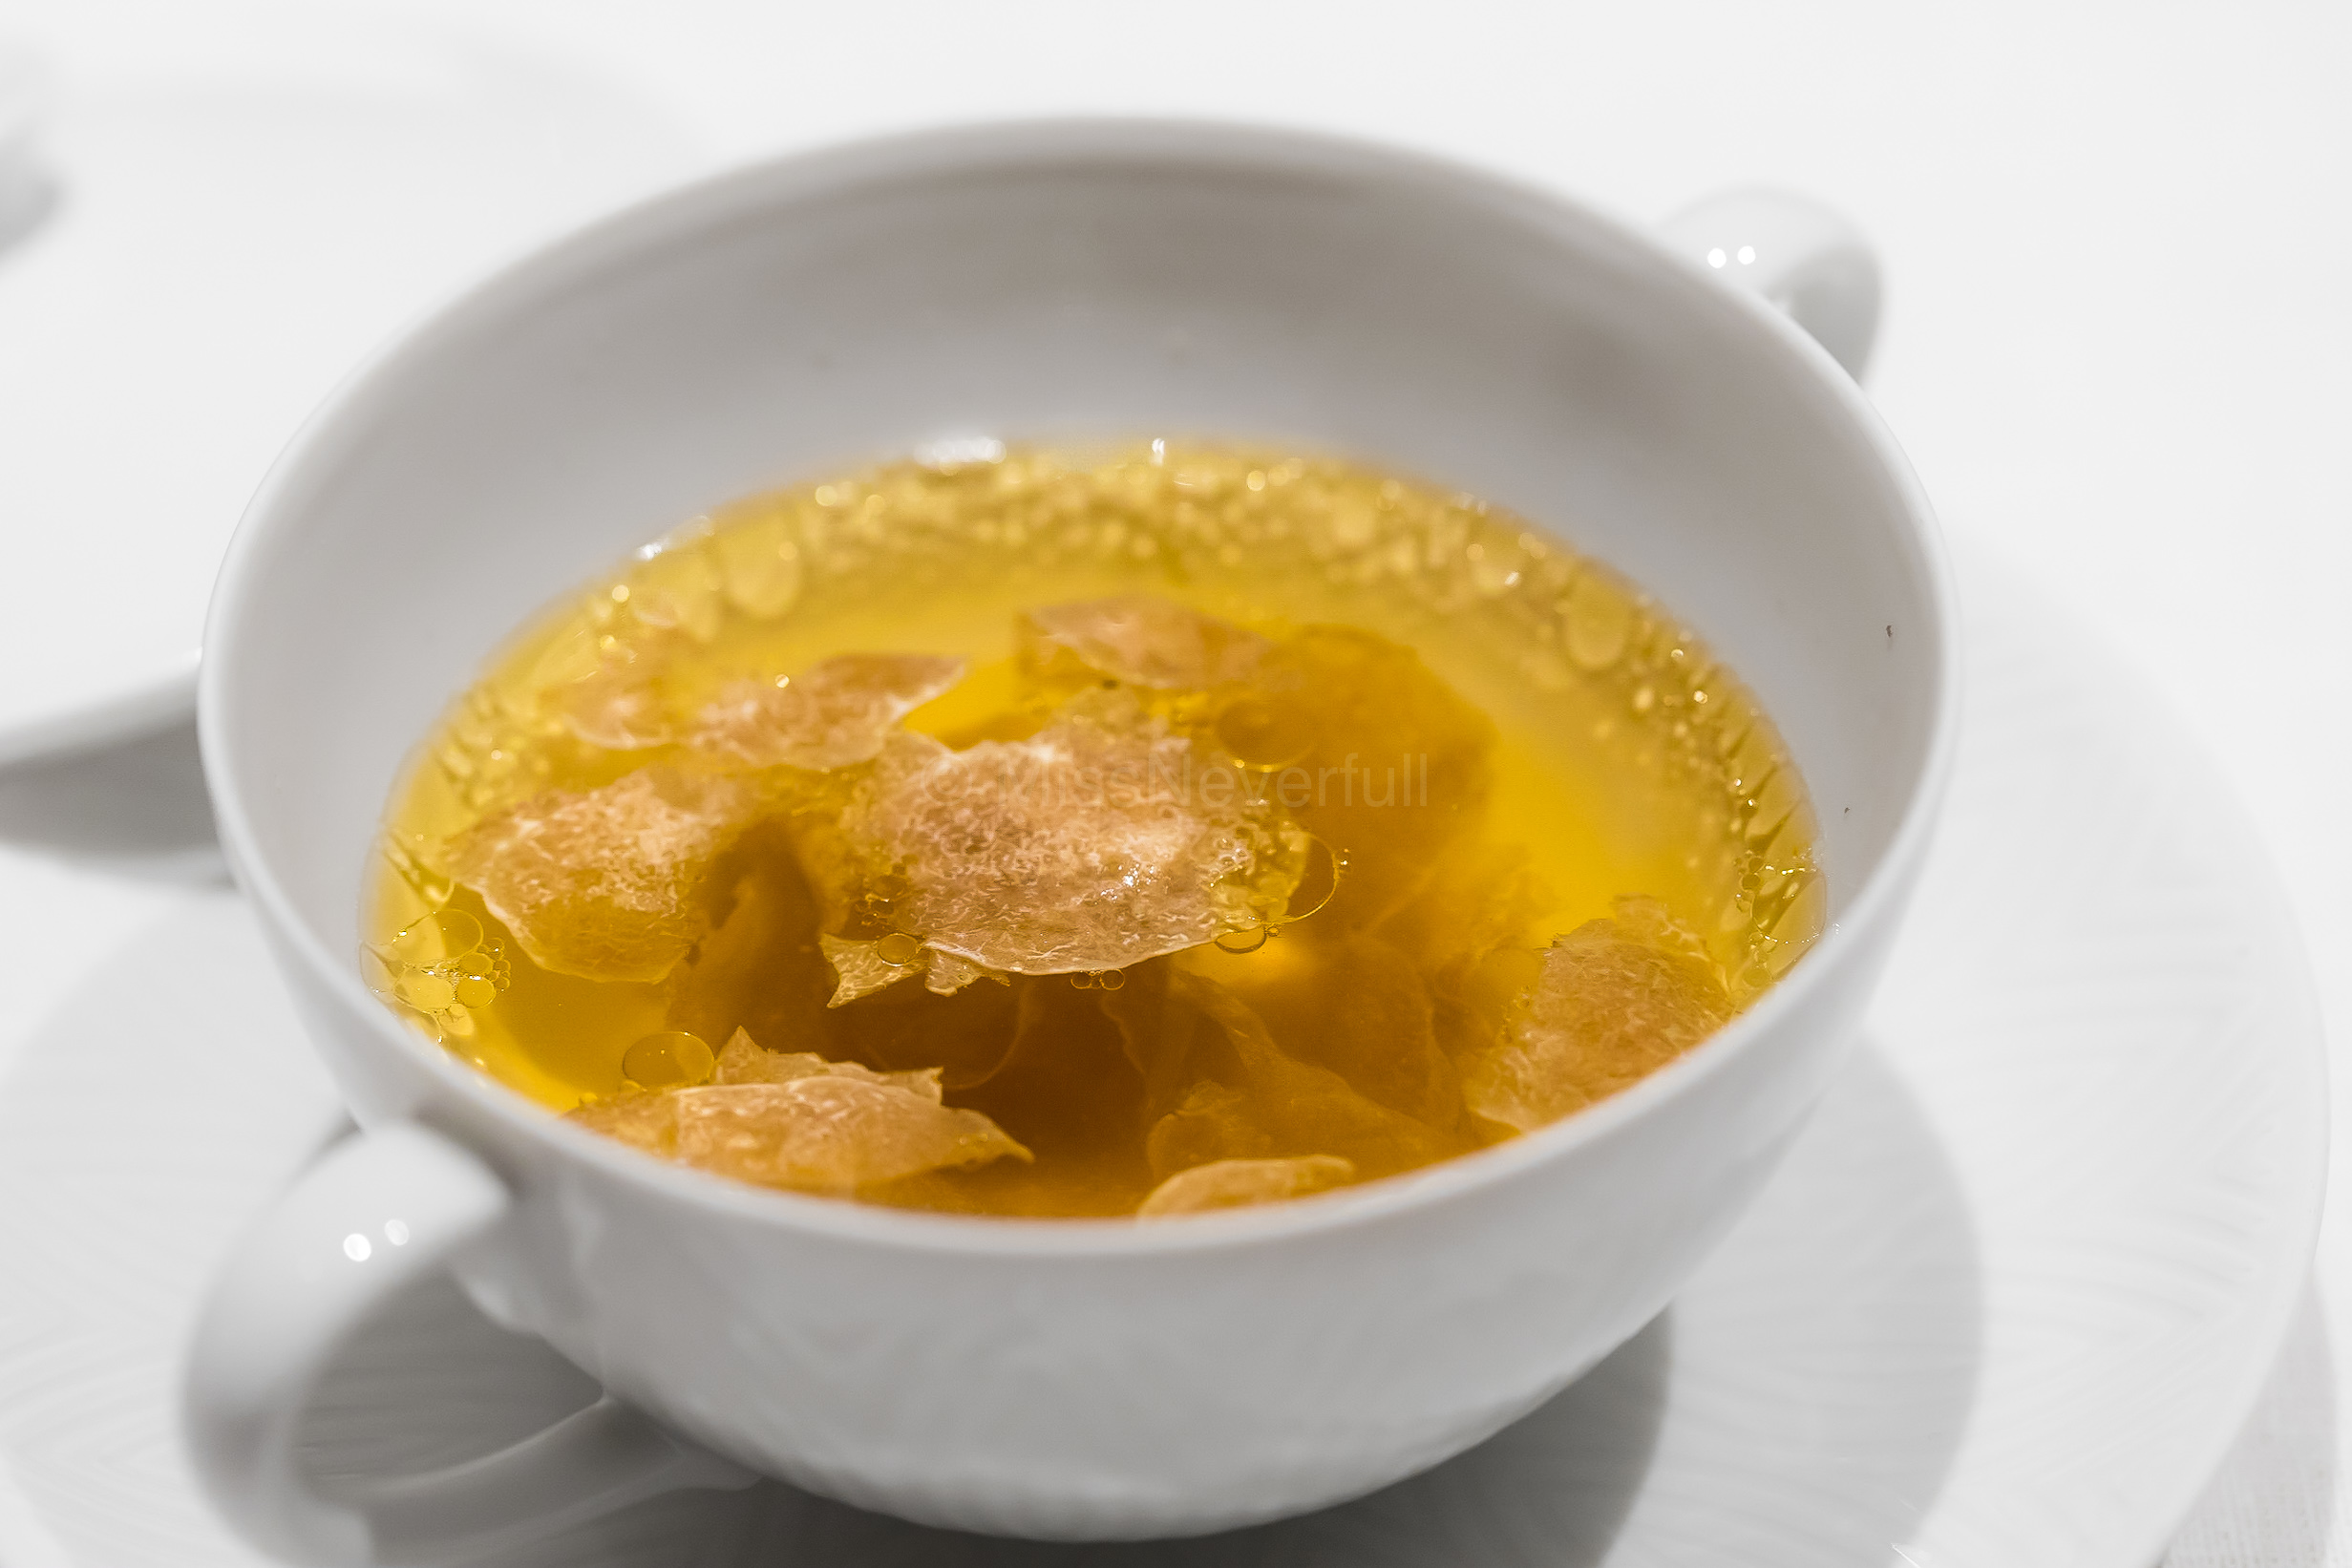 Late Autumn (white truffle season) | Consomme of Gifu ham, Alba white truffle